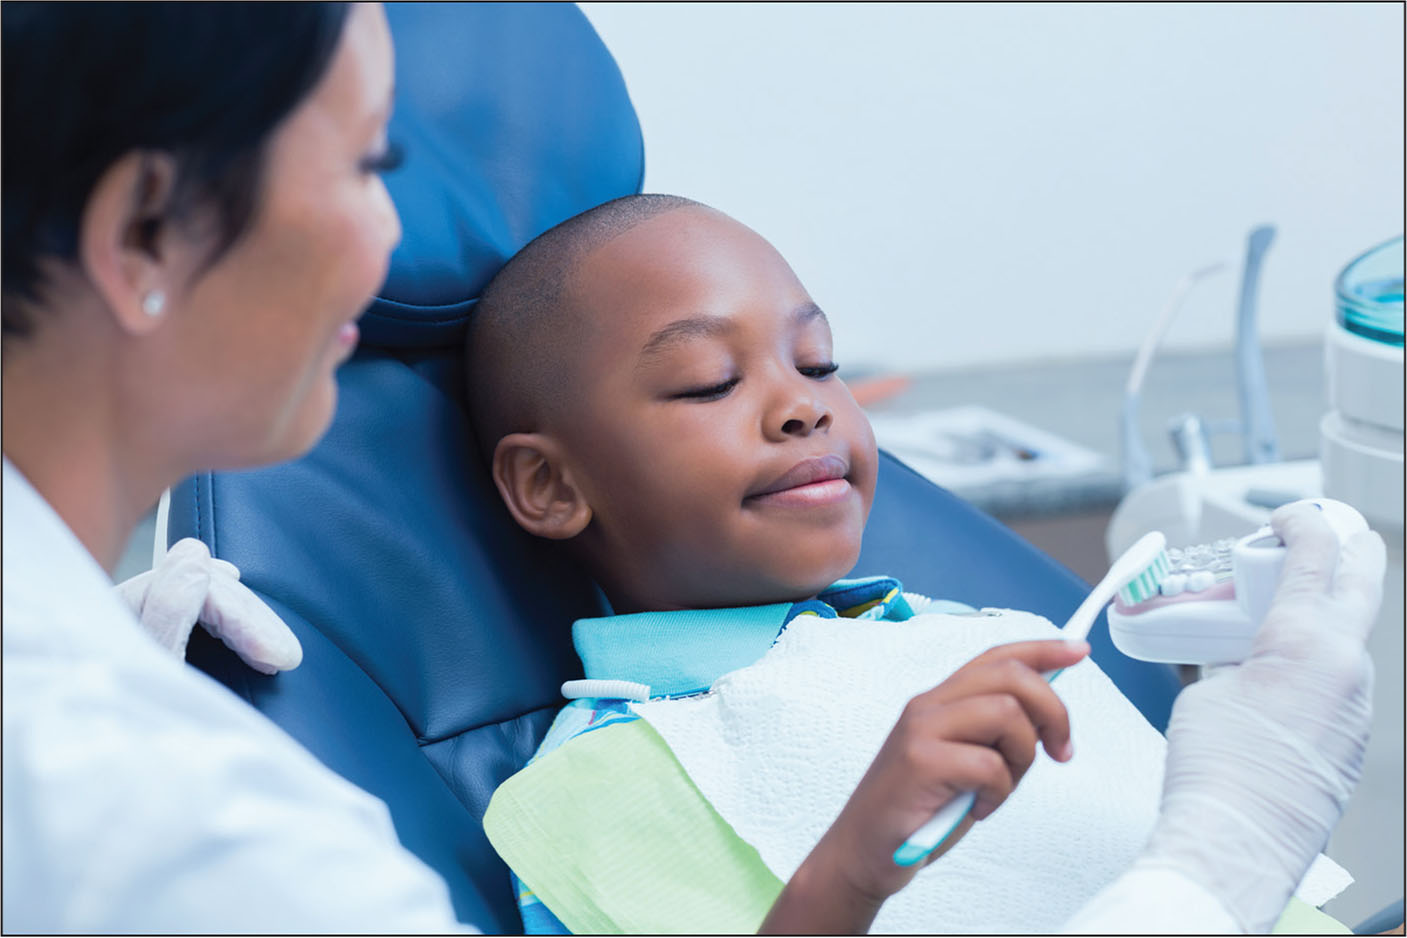 �A;A young boy practicing proper technique for teeth brushing with his dentist.�A;© Shutterstock